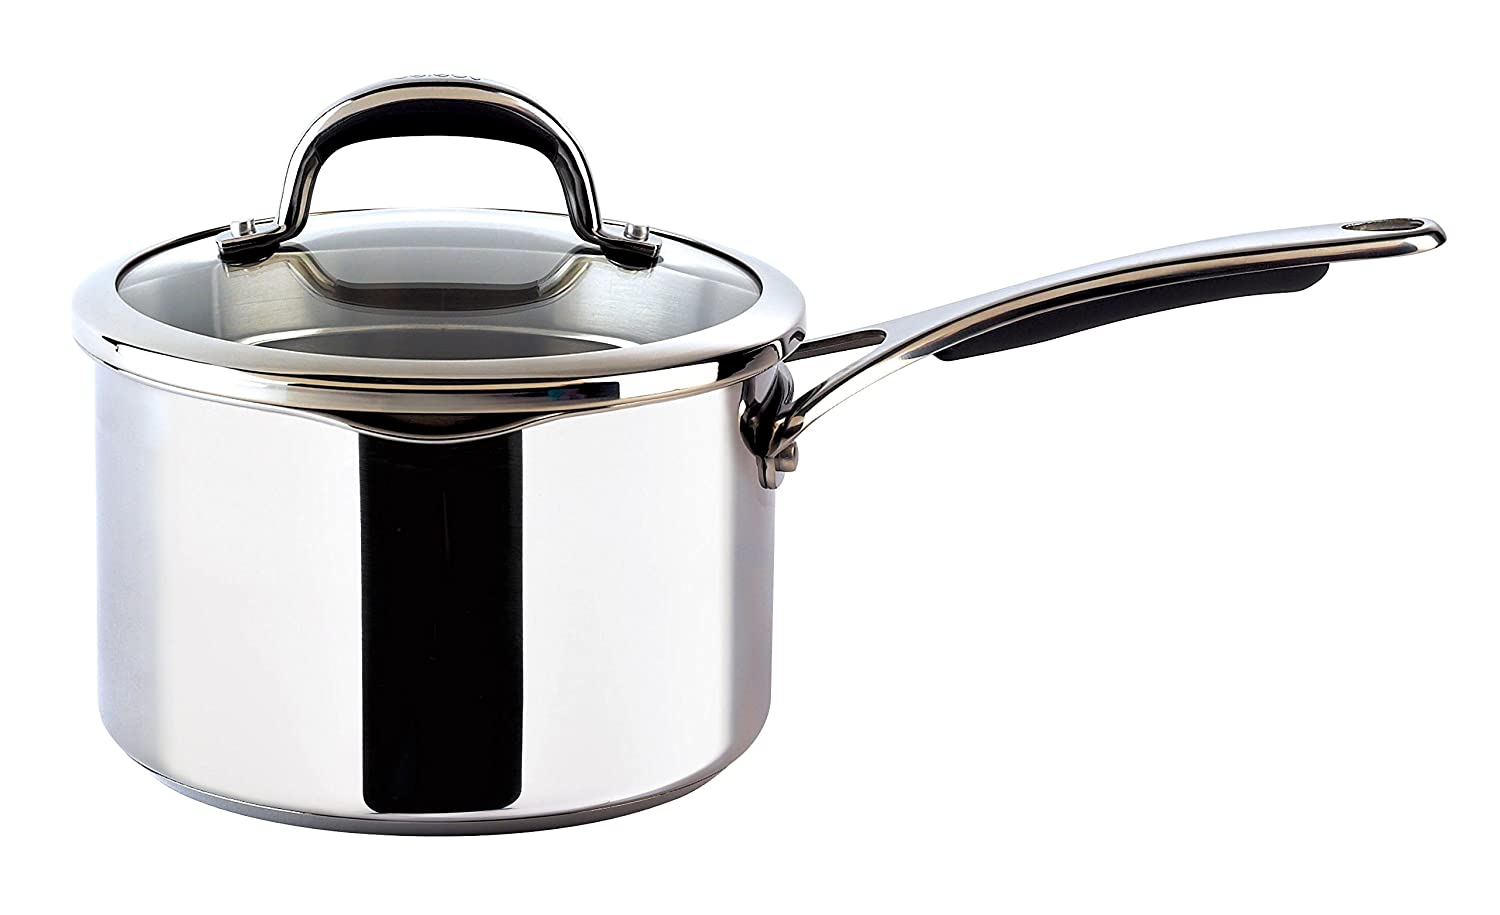 Meyer Select Saucepan with Lid, Silver, 16 cm, 1.4 Litre Meyer Group Ltd 79539